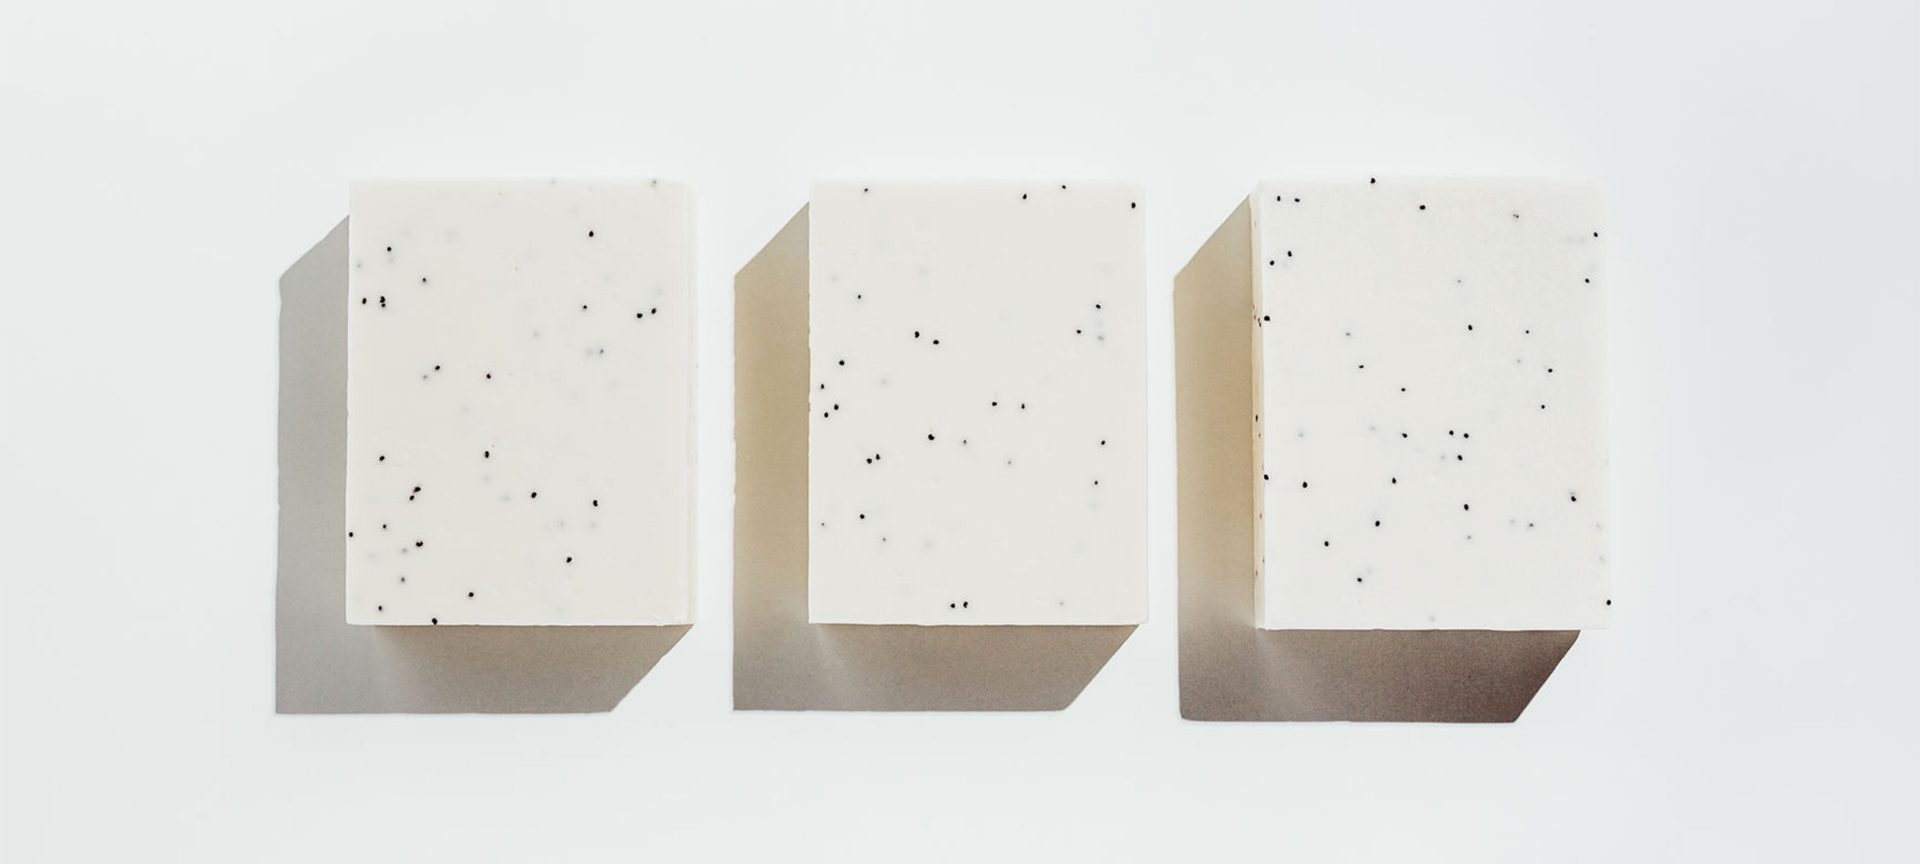 three blocks of white soap against a white background